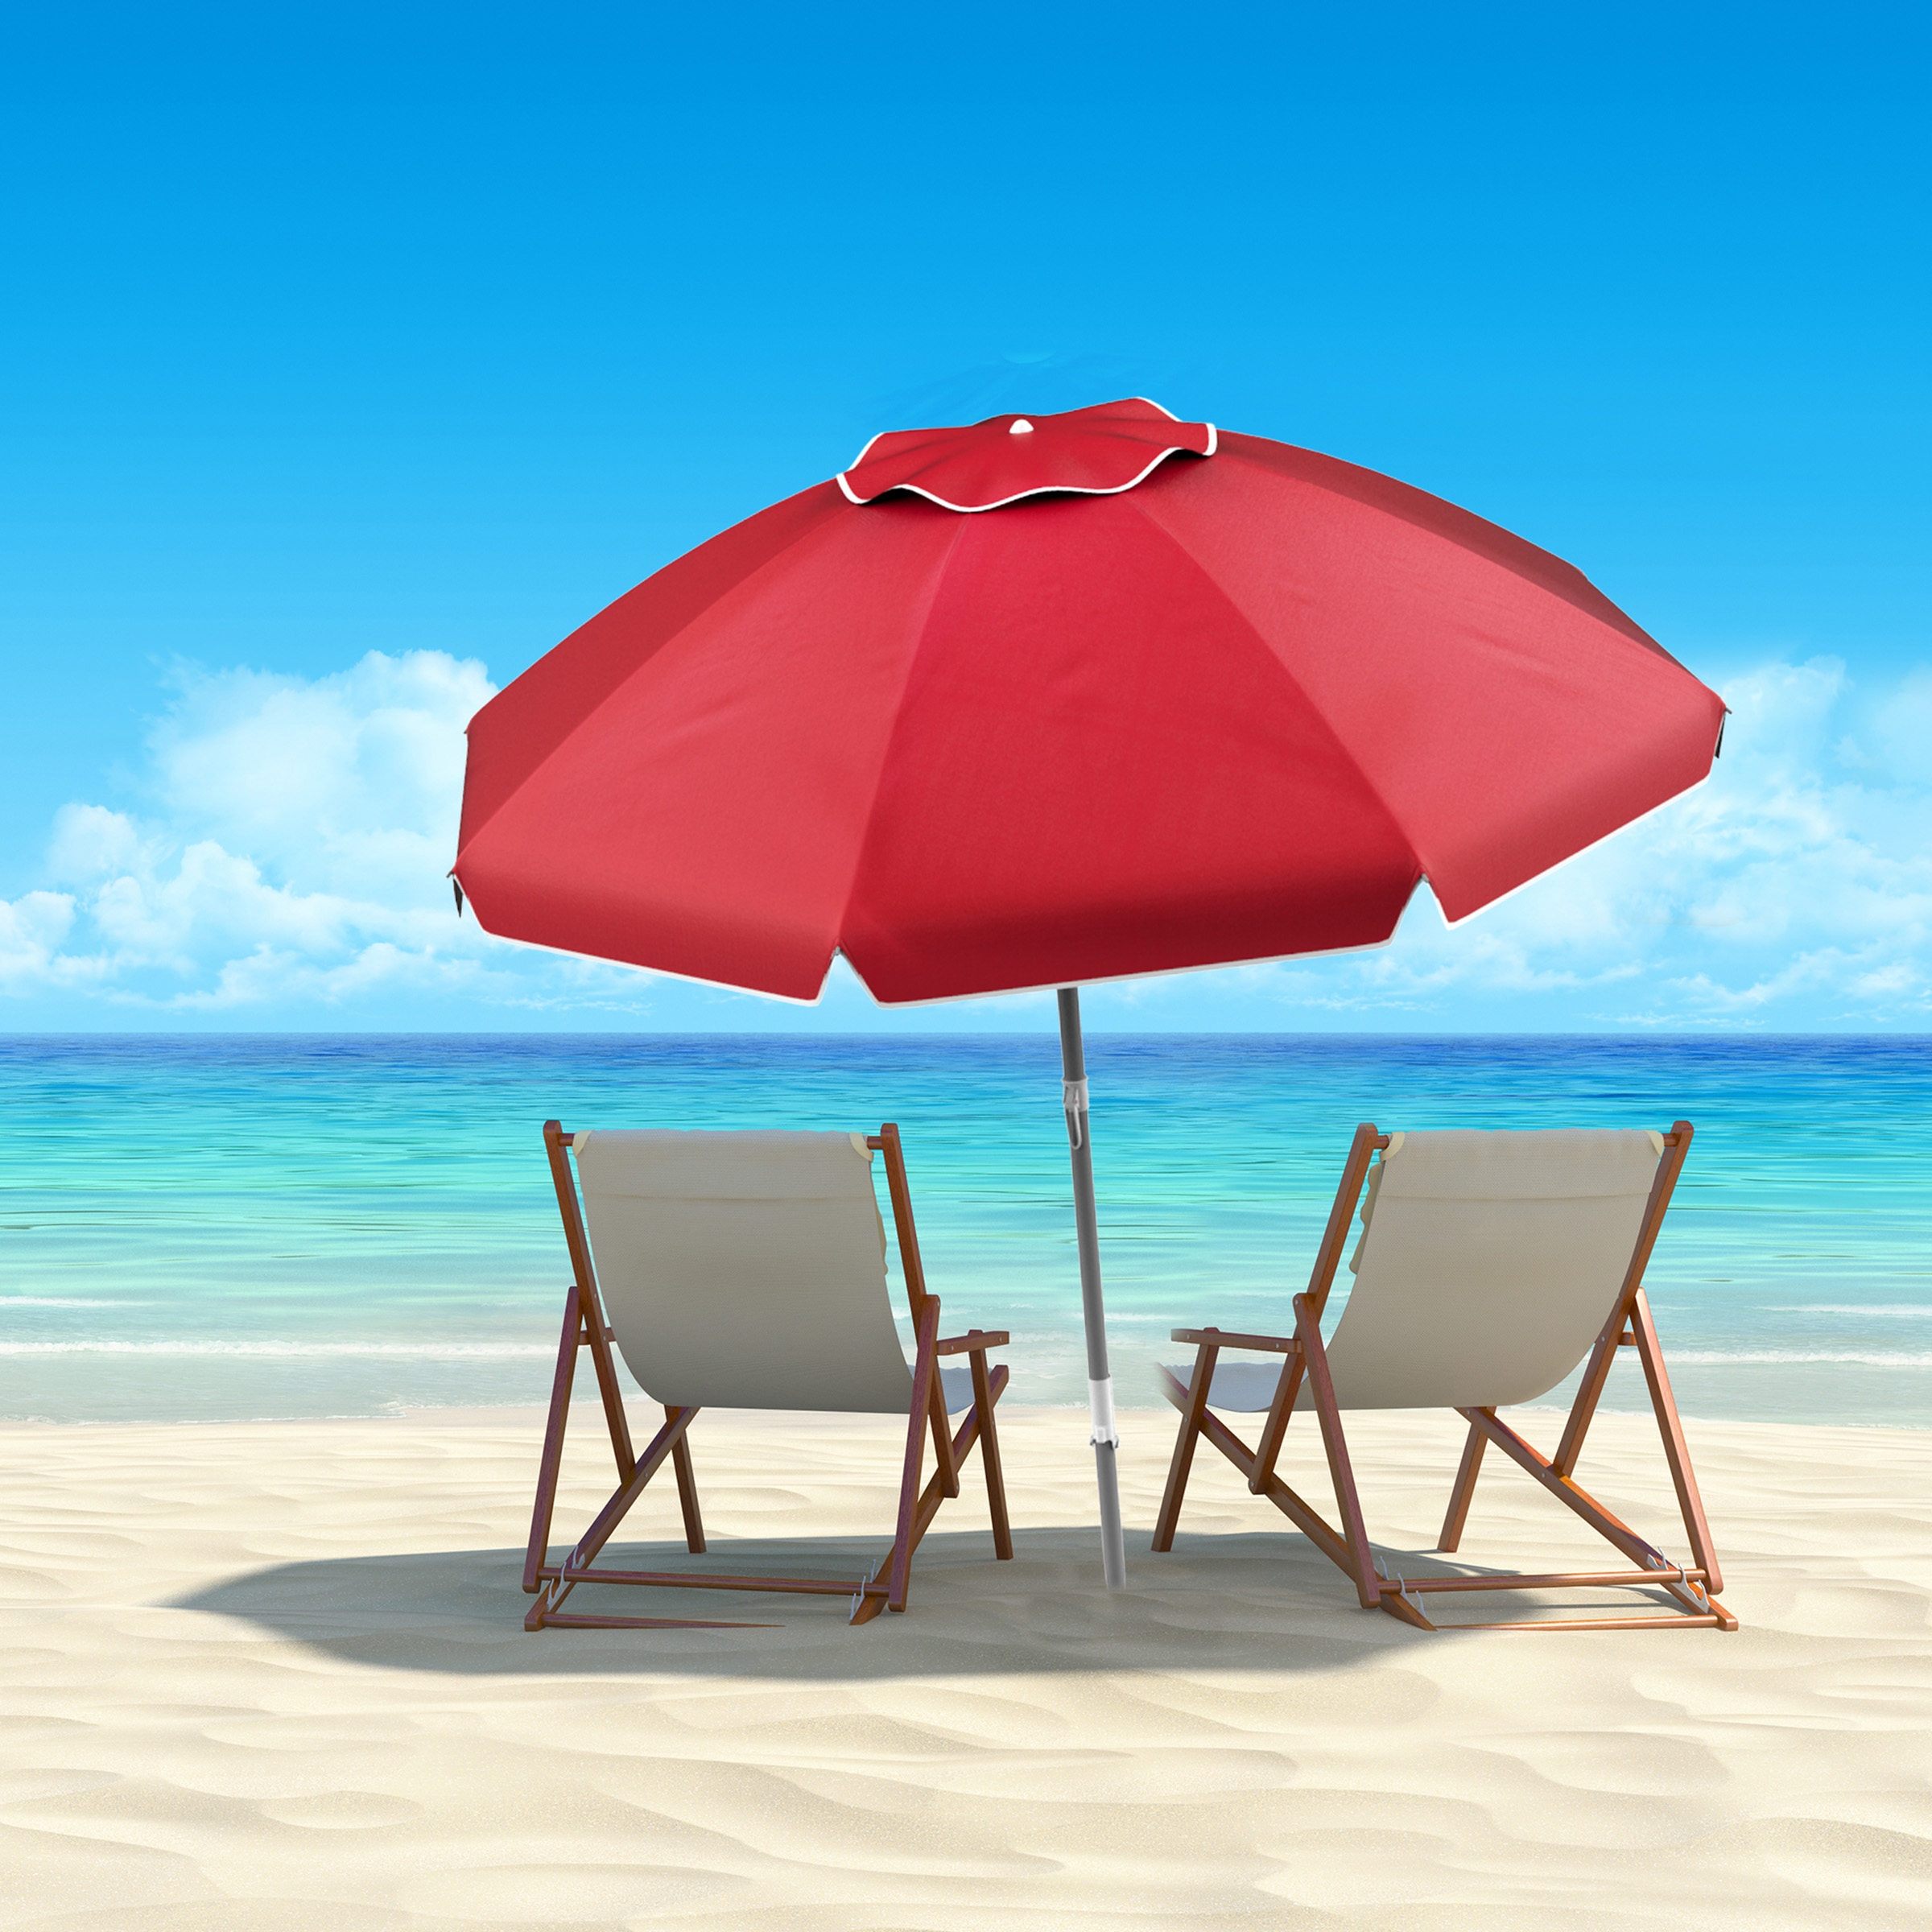 Leasure Fiberglass Portable Beach Umbrellas Throughout Most Up To Date Beach Umbrella With 360 Degree Tilt  Portable Outdoor Sun Shade Canopy With  Uv Protection, Sand Anchor, Carrying Casepure Garden (7 Ft, Blue) (View 14 of 20)